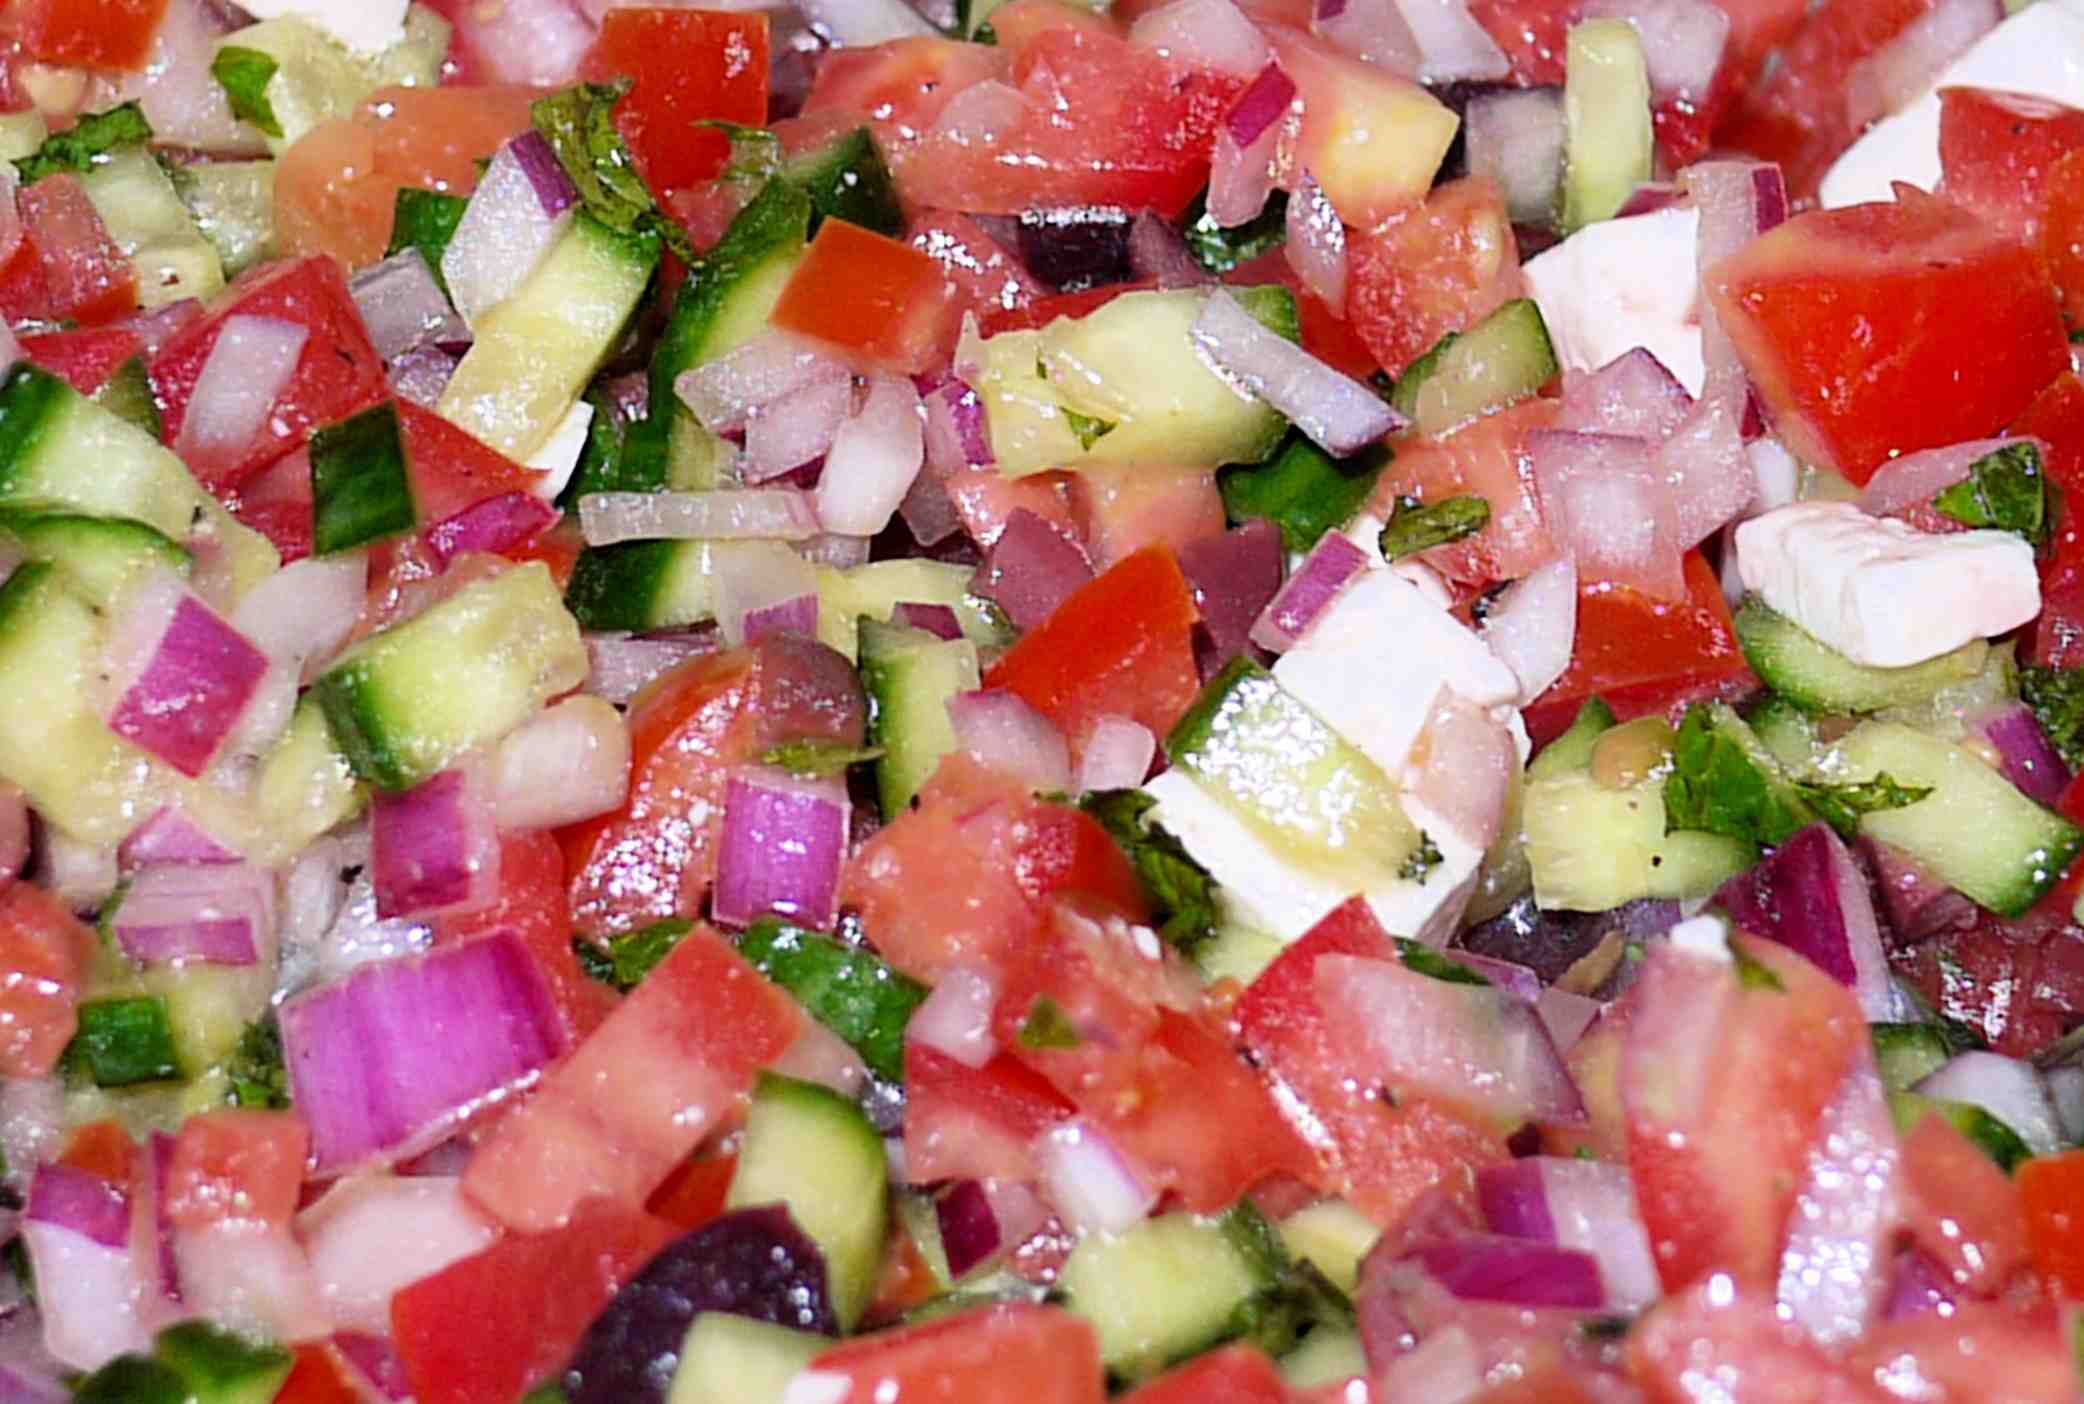 Tomato and Cucumber Salad | This little piggy went to the farmers ...